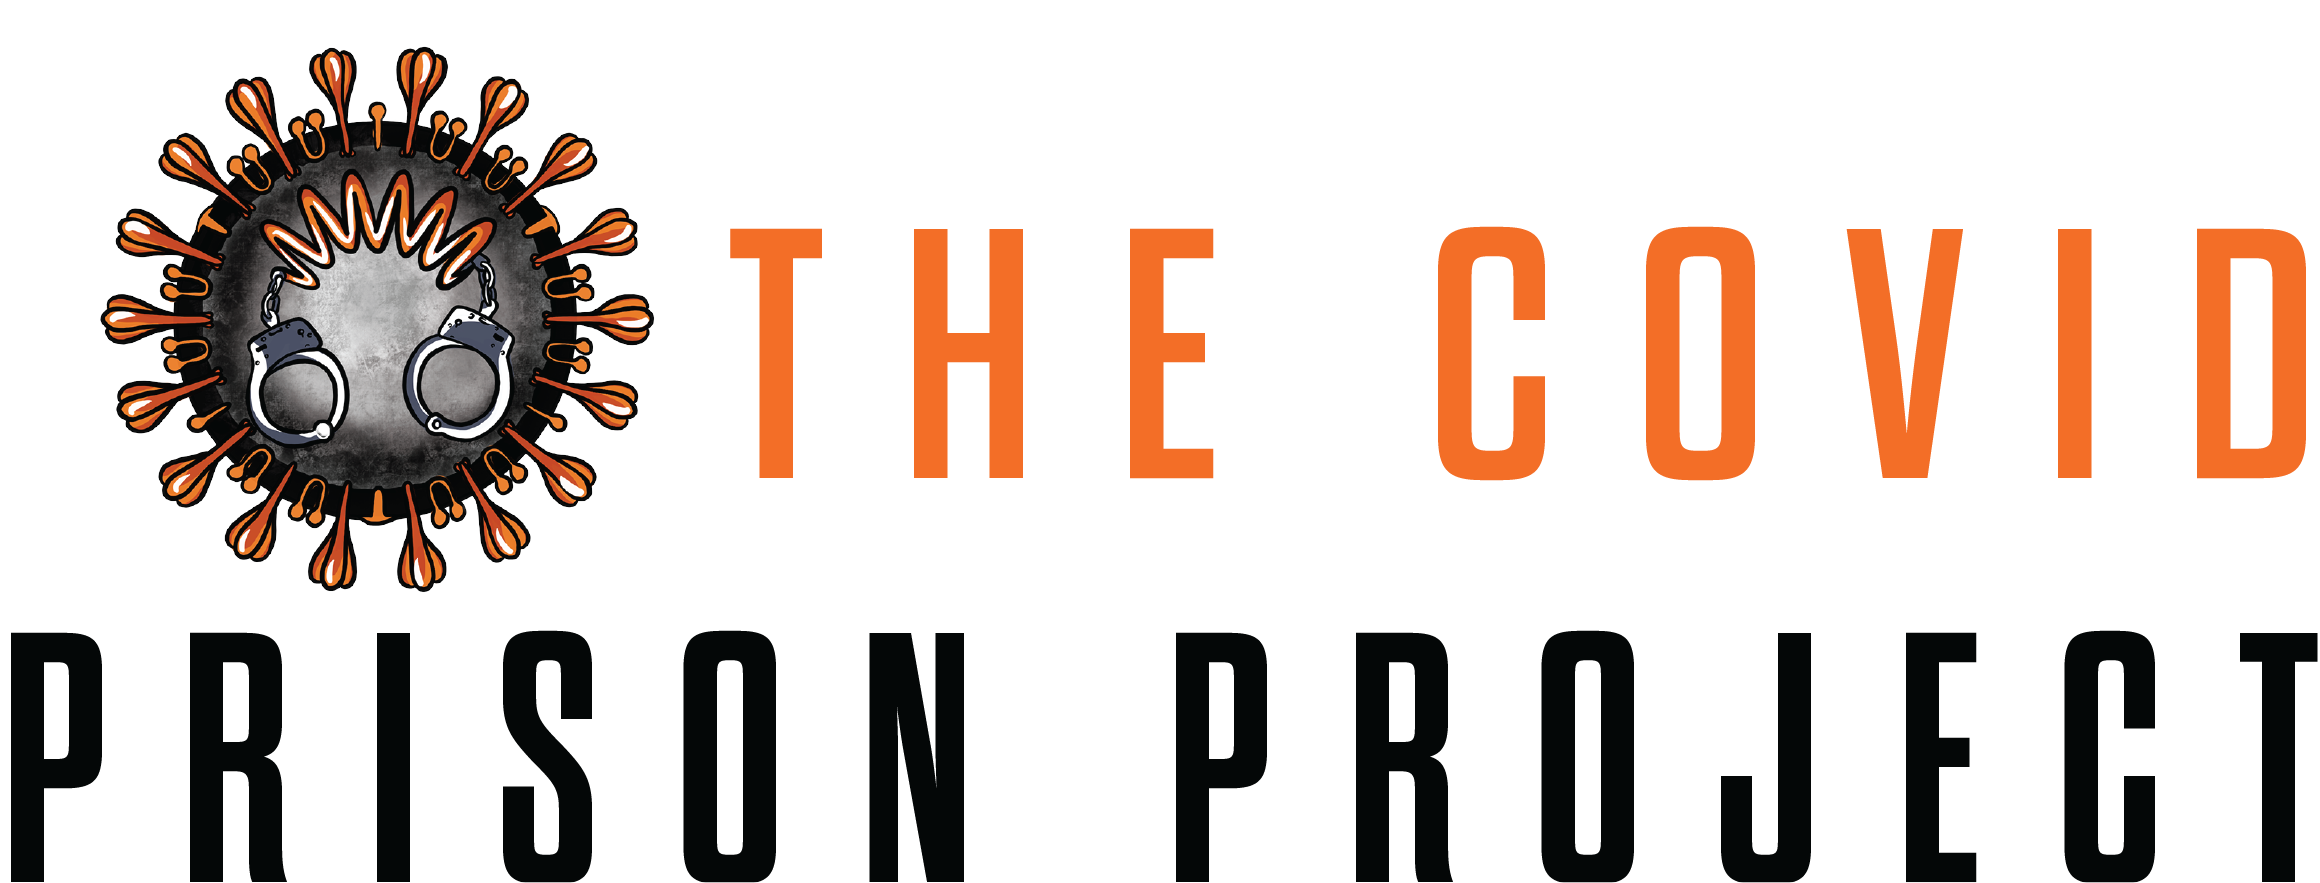 The COVID Prison Project tracks data and policy across the country to monitor COVID-19 in correctional facilities